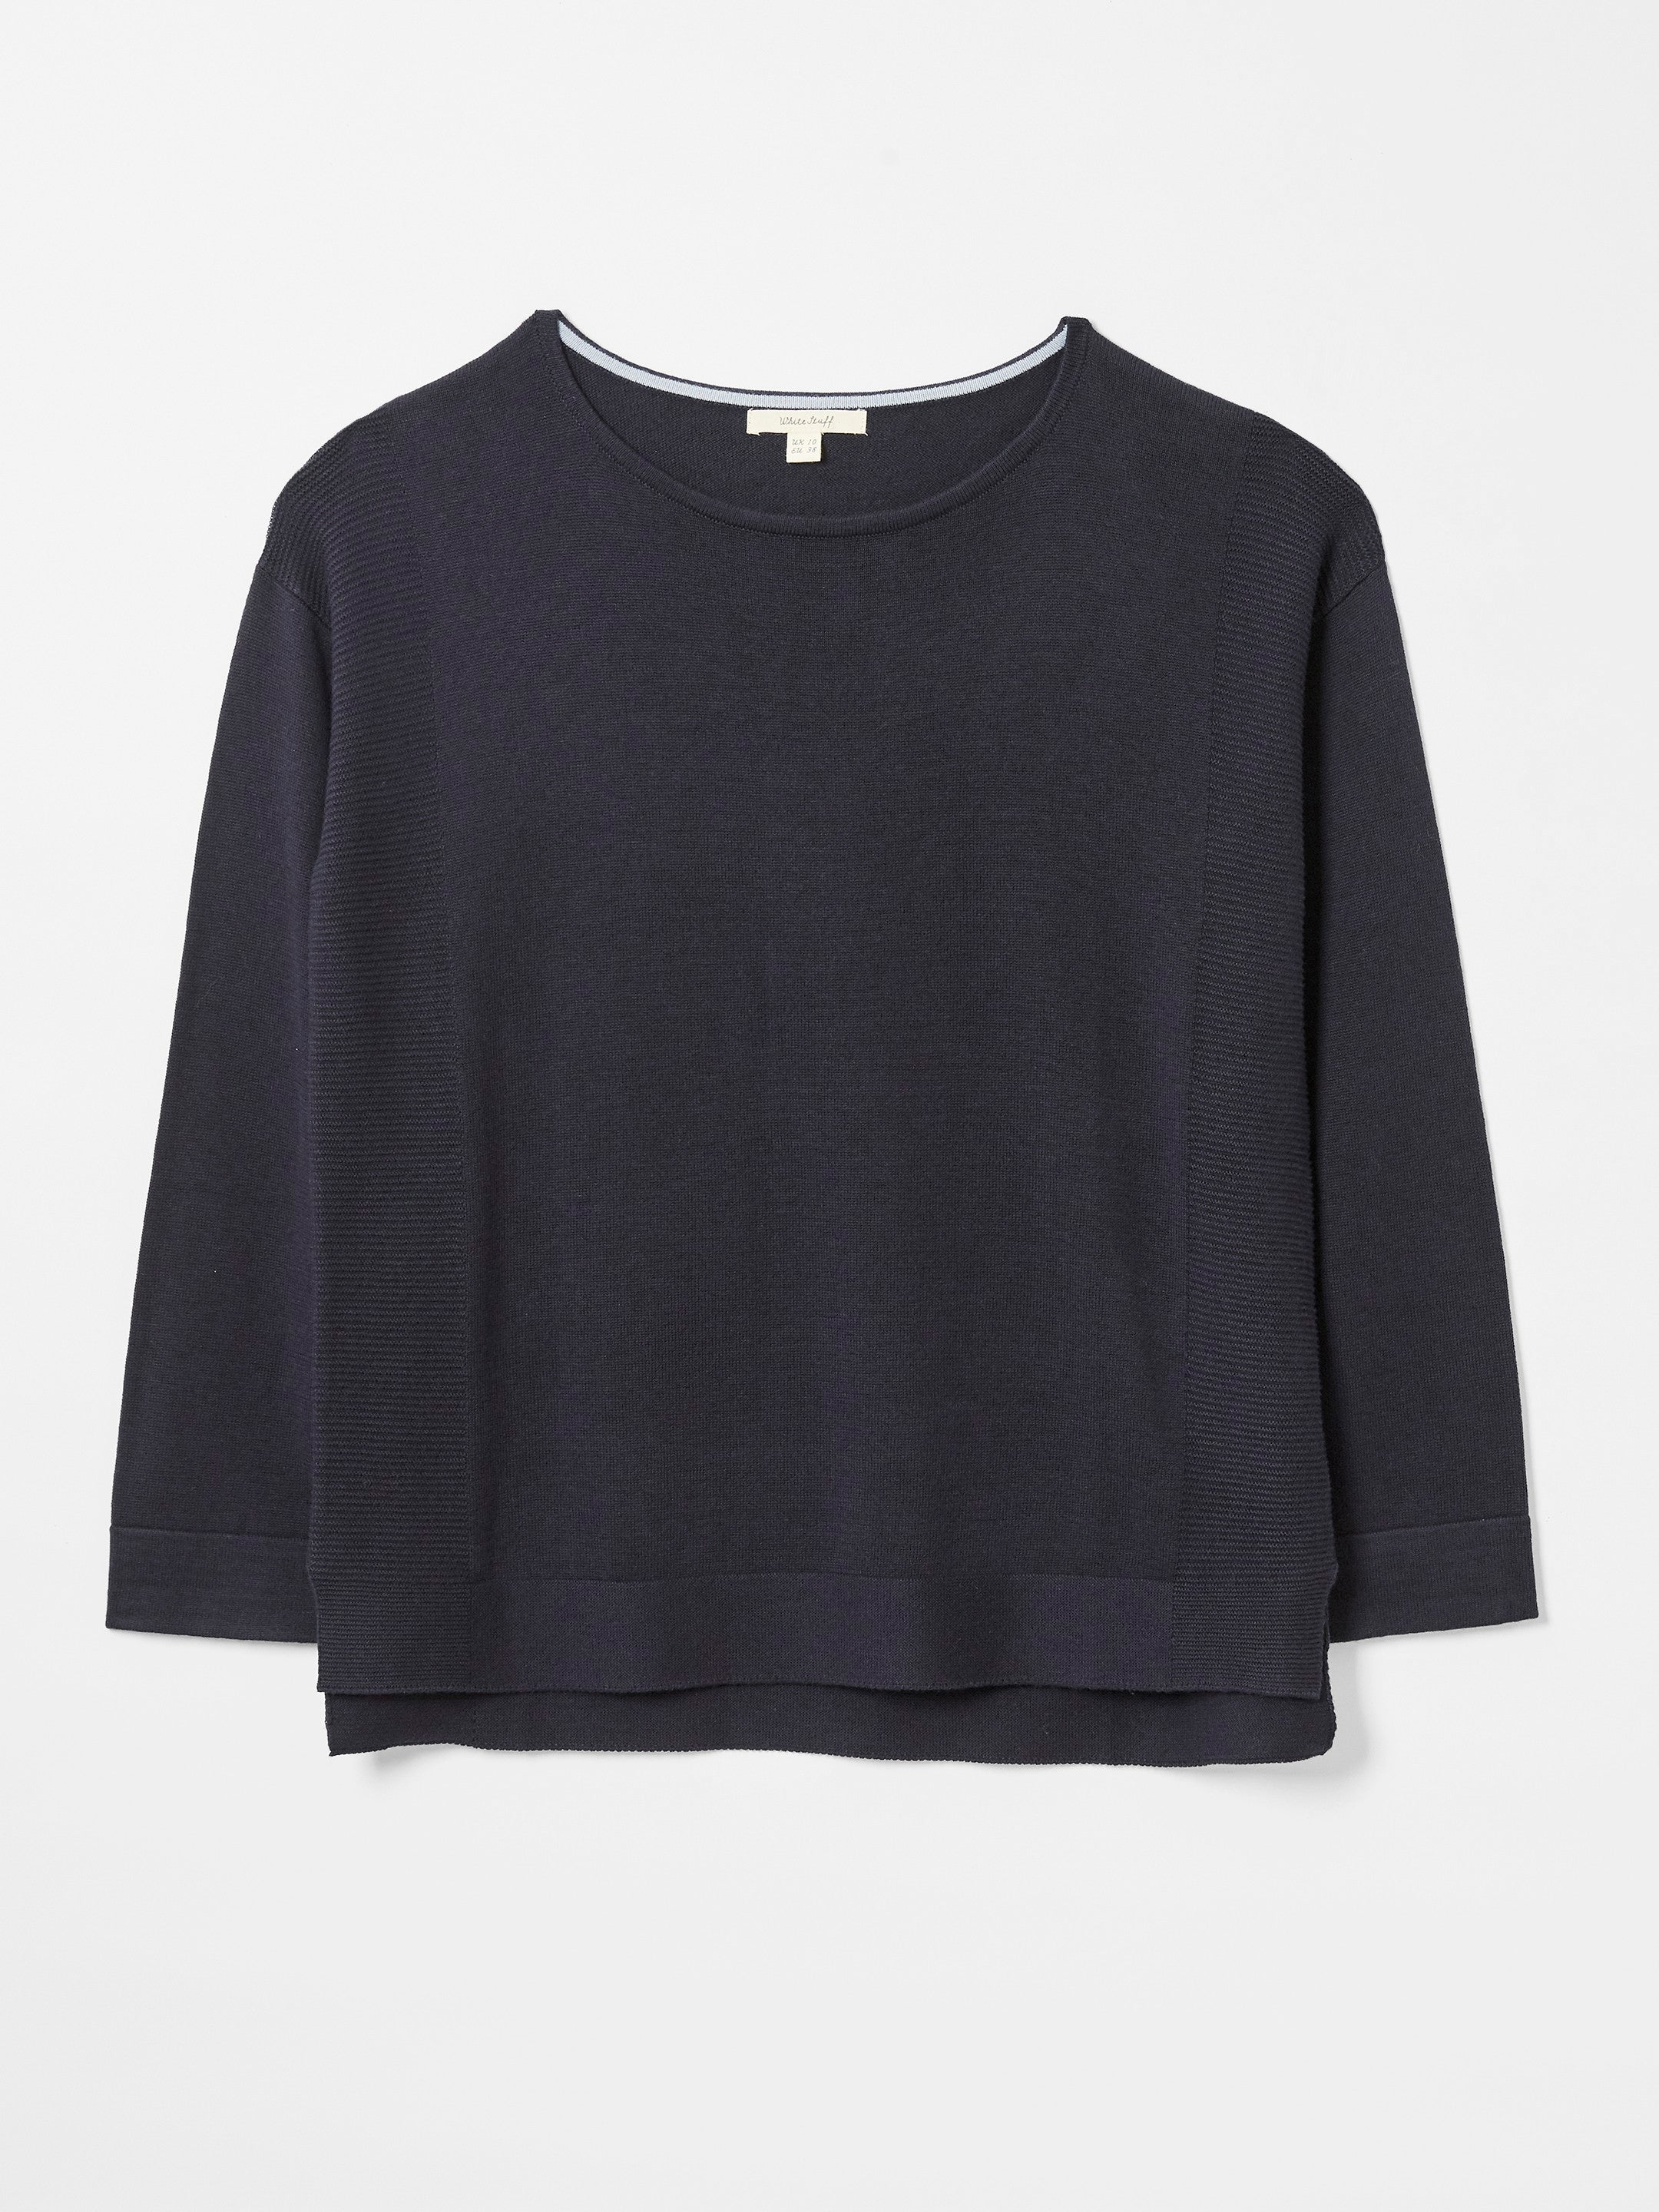 White Stuff Olivia Jumper for Ladies in Dark Navy